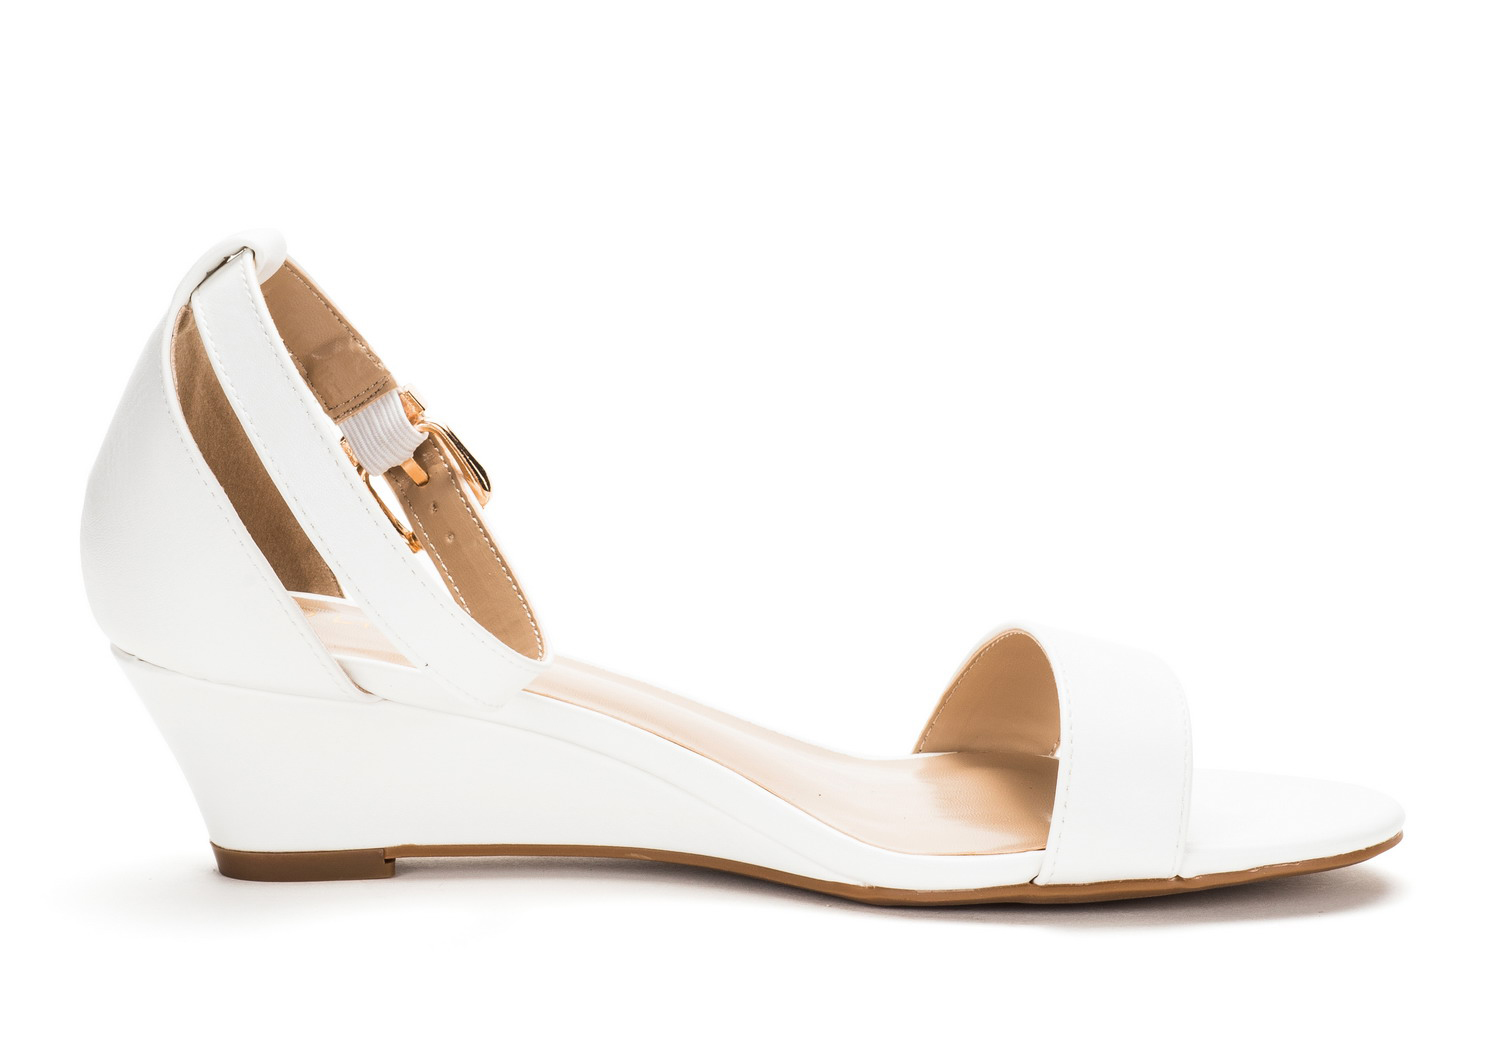 DREAM-PAIRS-Women-039-s-Ankle-Strap-Low-Wedge-Sandals-Open-Toe-Casual-Dress-Shoes thumbnail 23